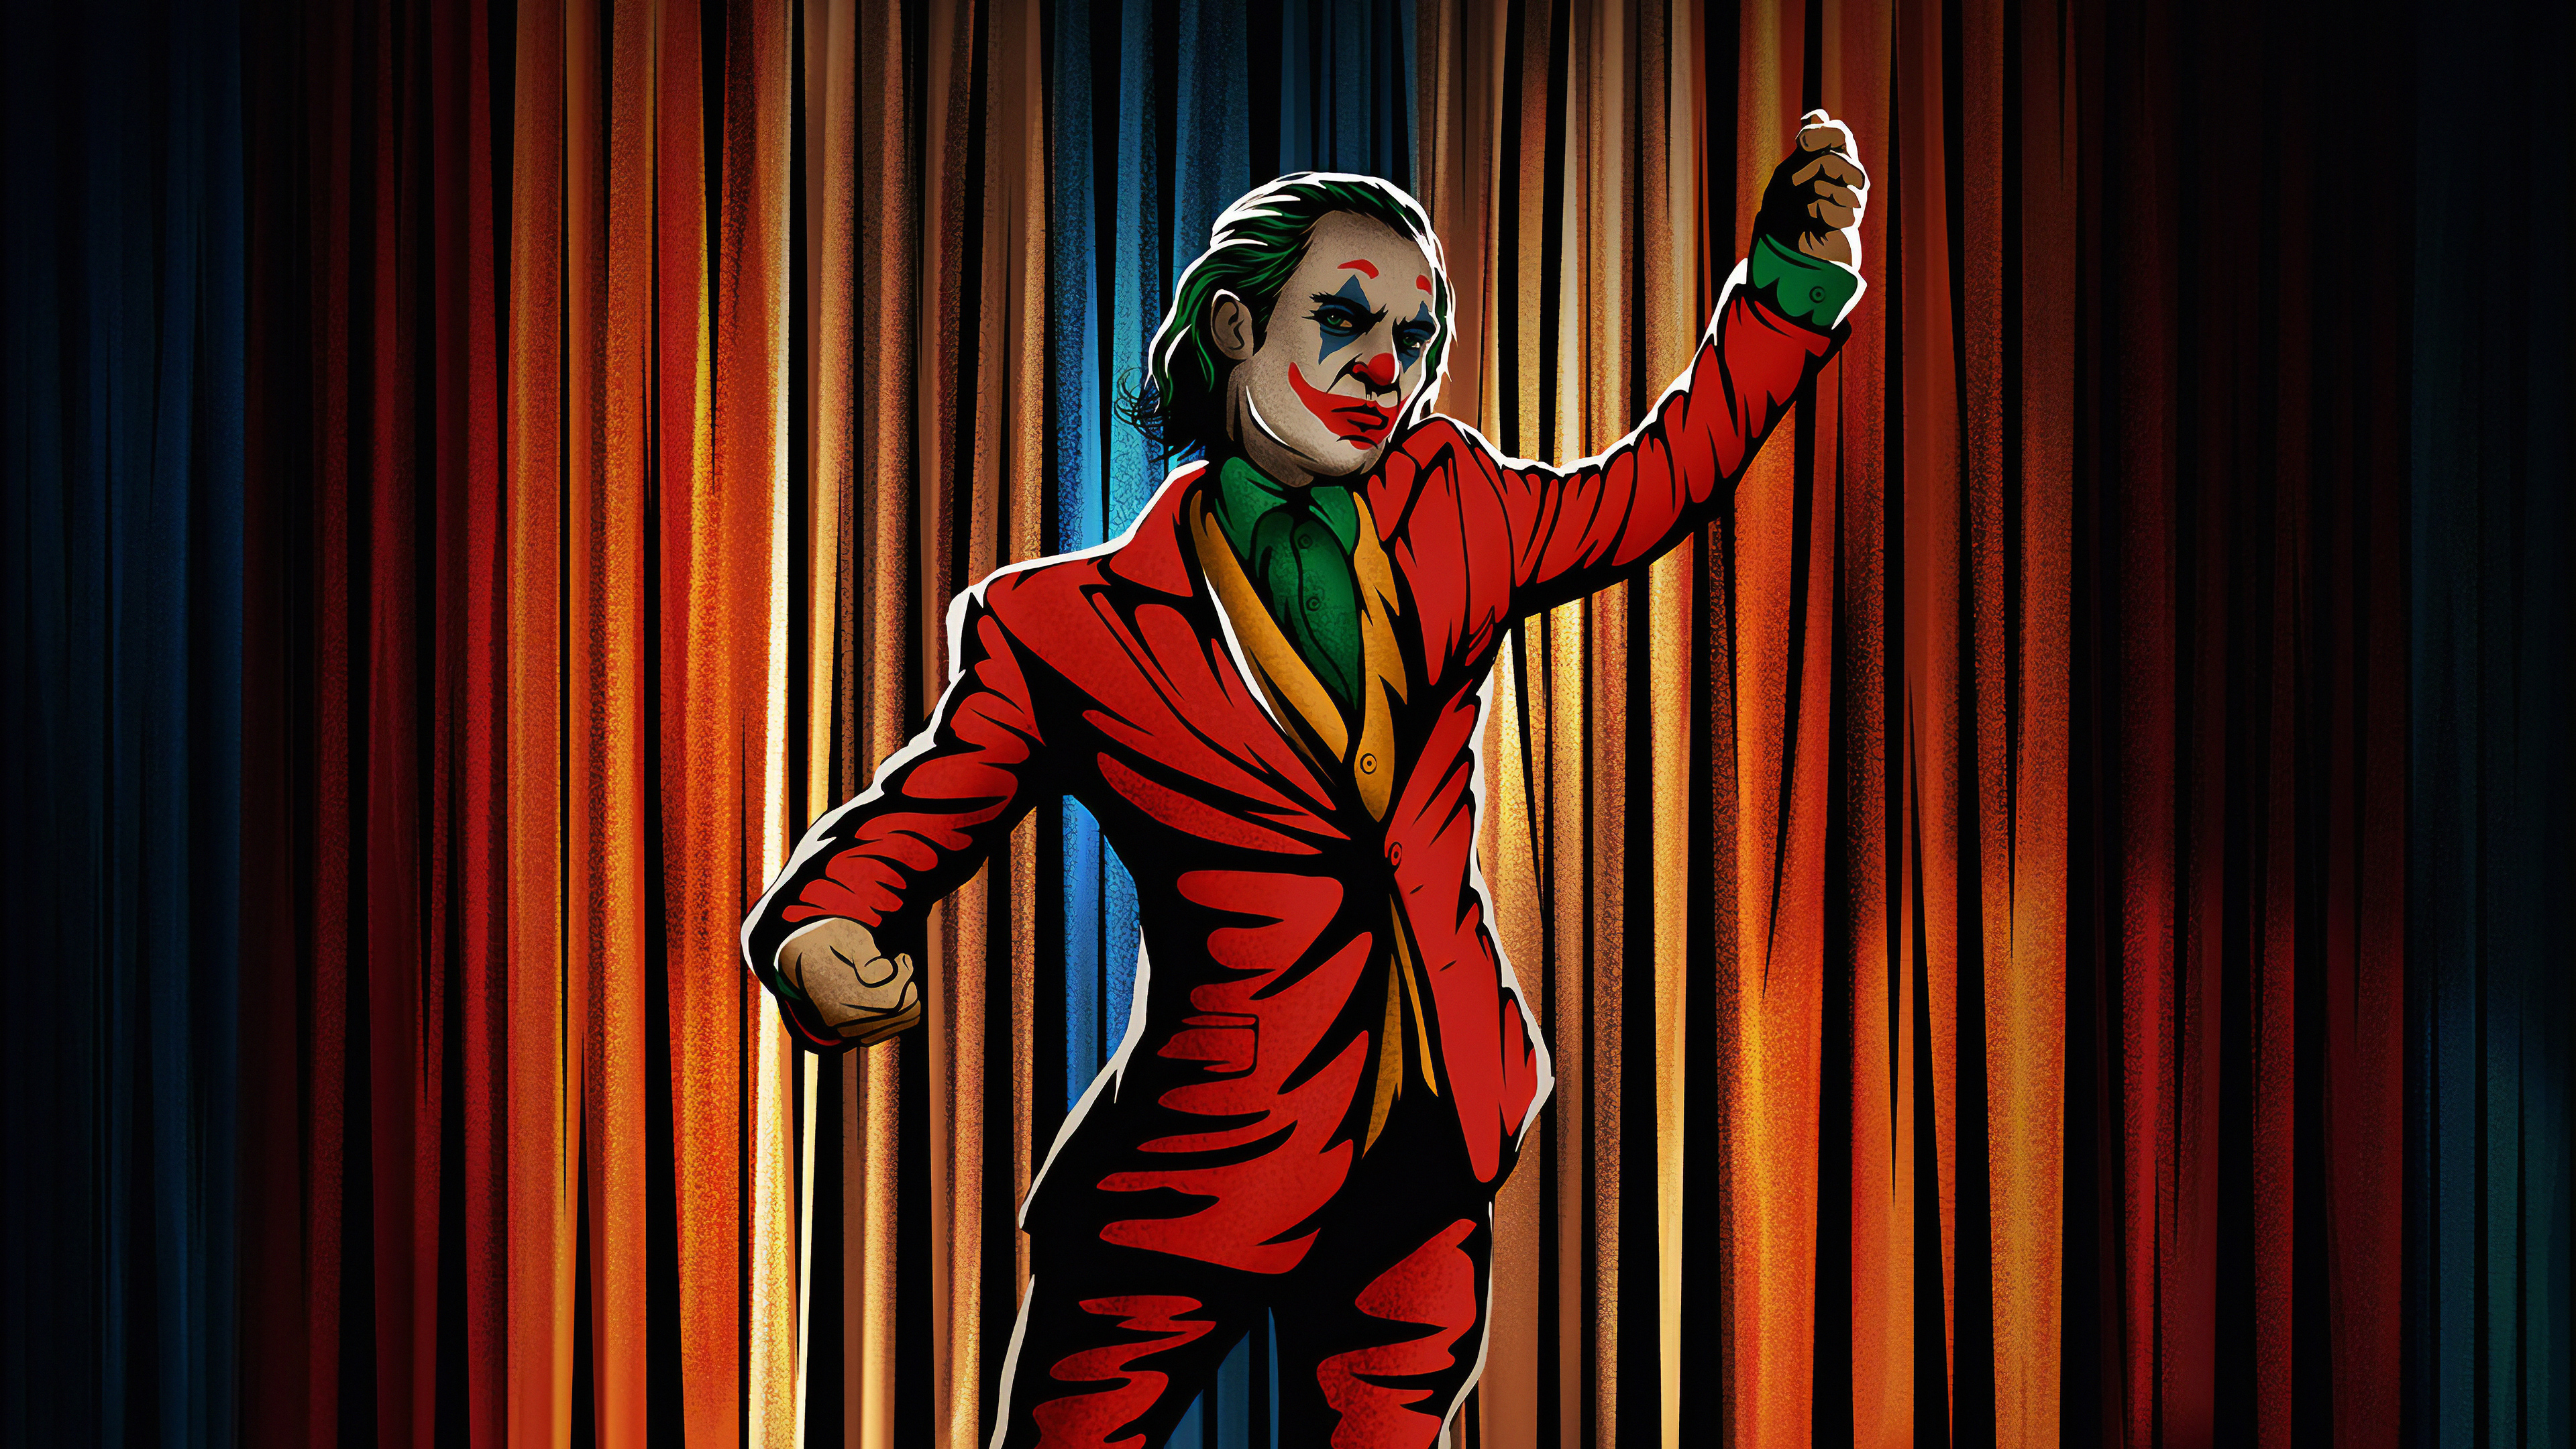 Joker Dancing Hd Superheroes 4k Wallpapers Images Backgrounds Photos And Pictures